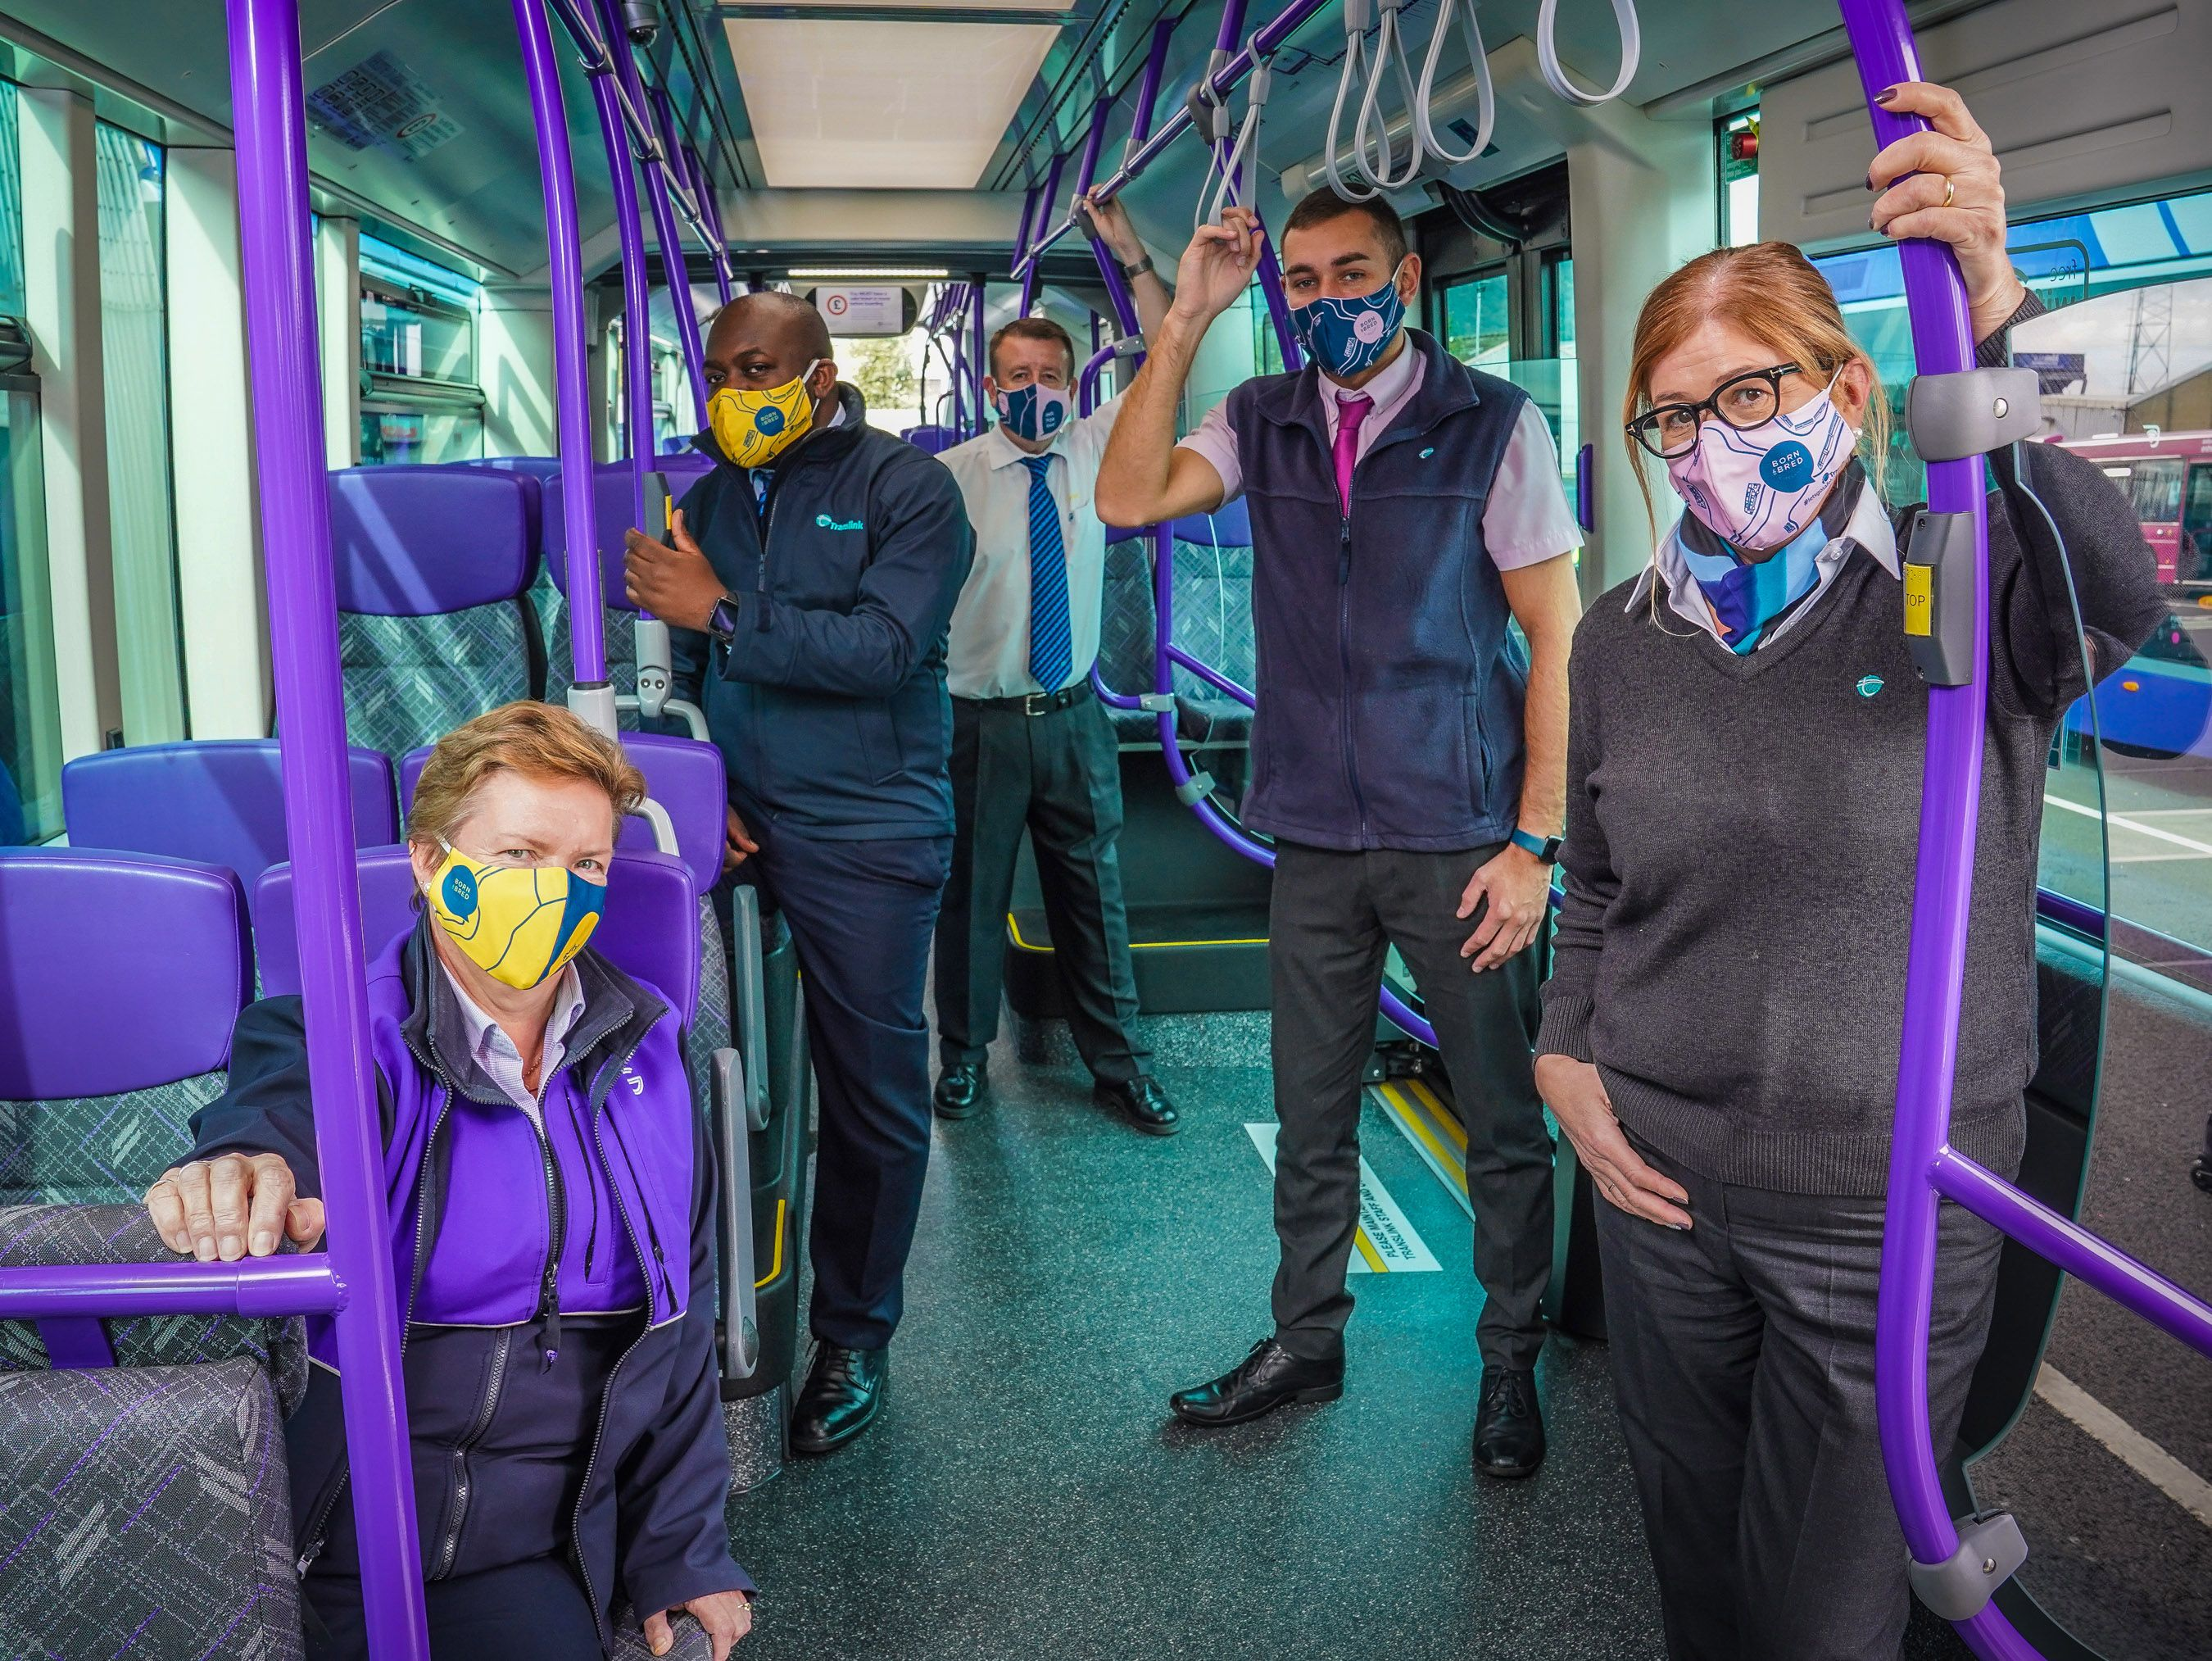 KEEPING EACH OTHER SAFE:Launching the limited-edition giveaway of bespoke face coverings are Translink staff Karen Spence, Kaz M'wepu, David Sewell, Ruairi Smith and Alice Kitchen